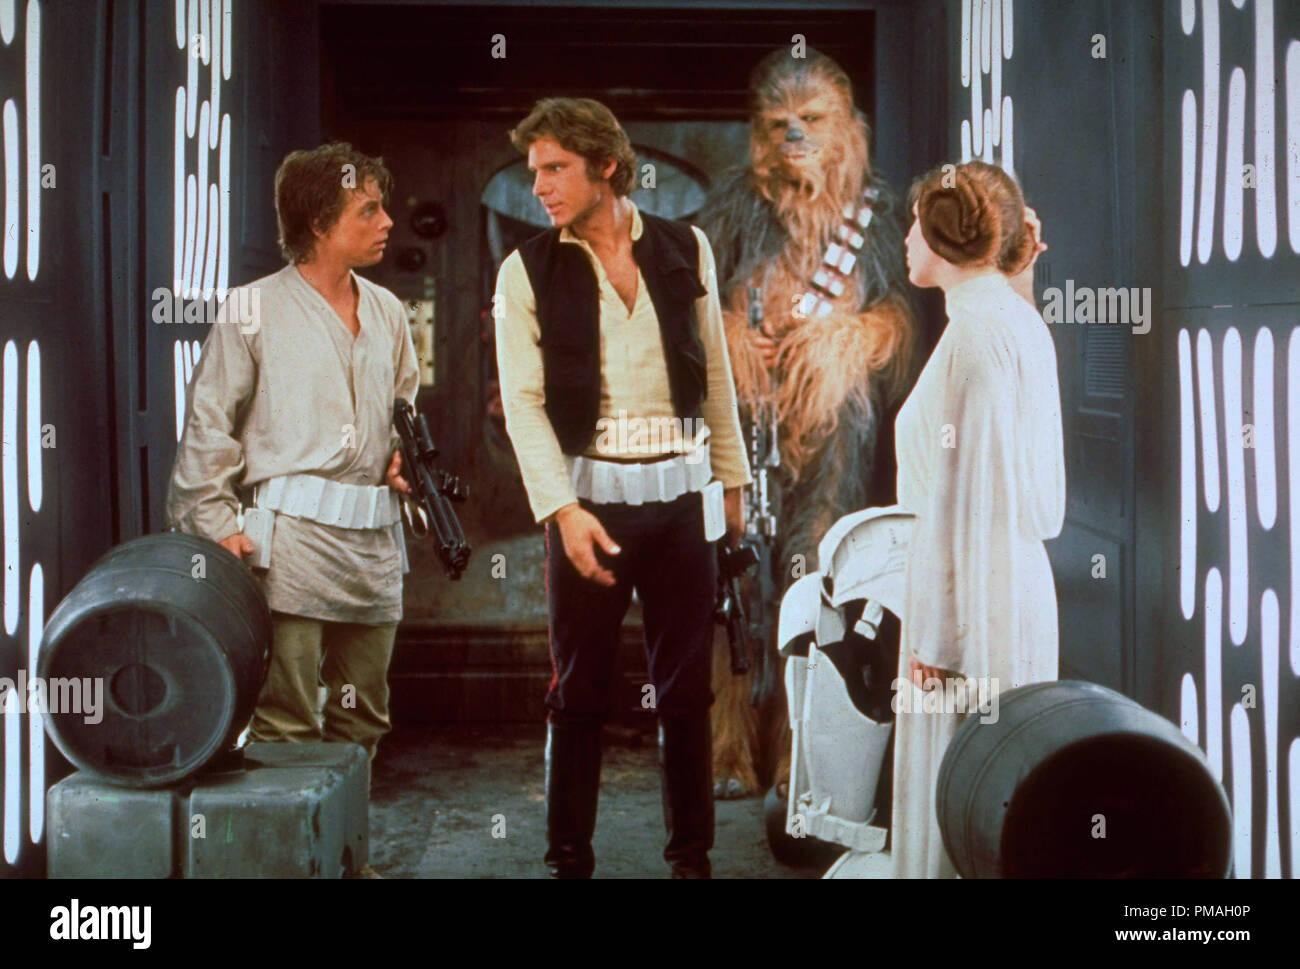 Mark Hamill, Harrison Ford,  Peter Mayhew and Carrie Fisher, 'Star Wars Episode IV: A New Hope' 1977  Lucasfilm Ltd.  File Reference # 32733_355THA - Stock Image